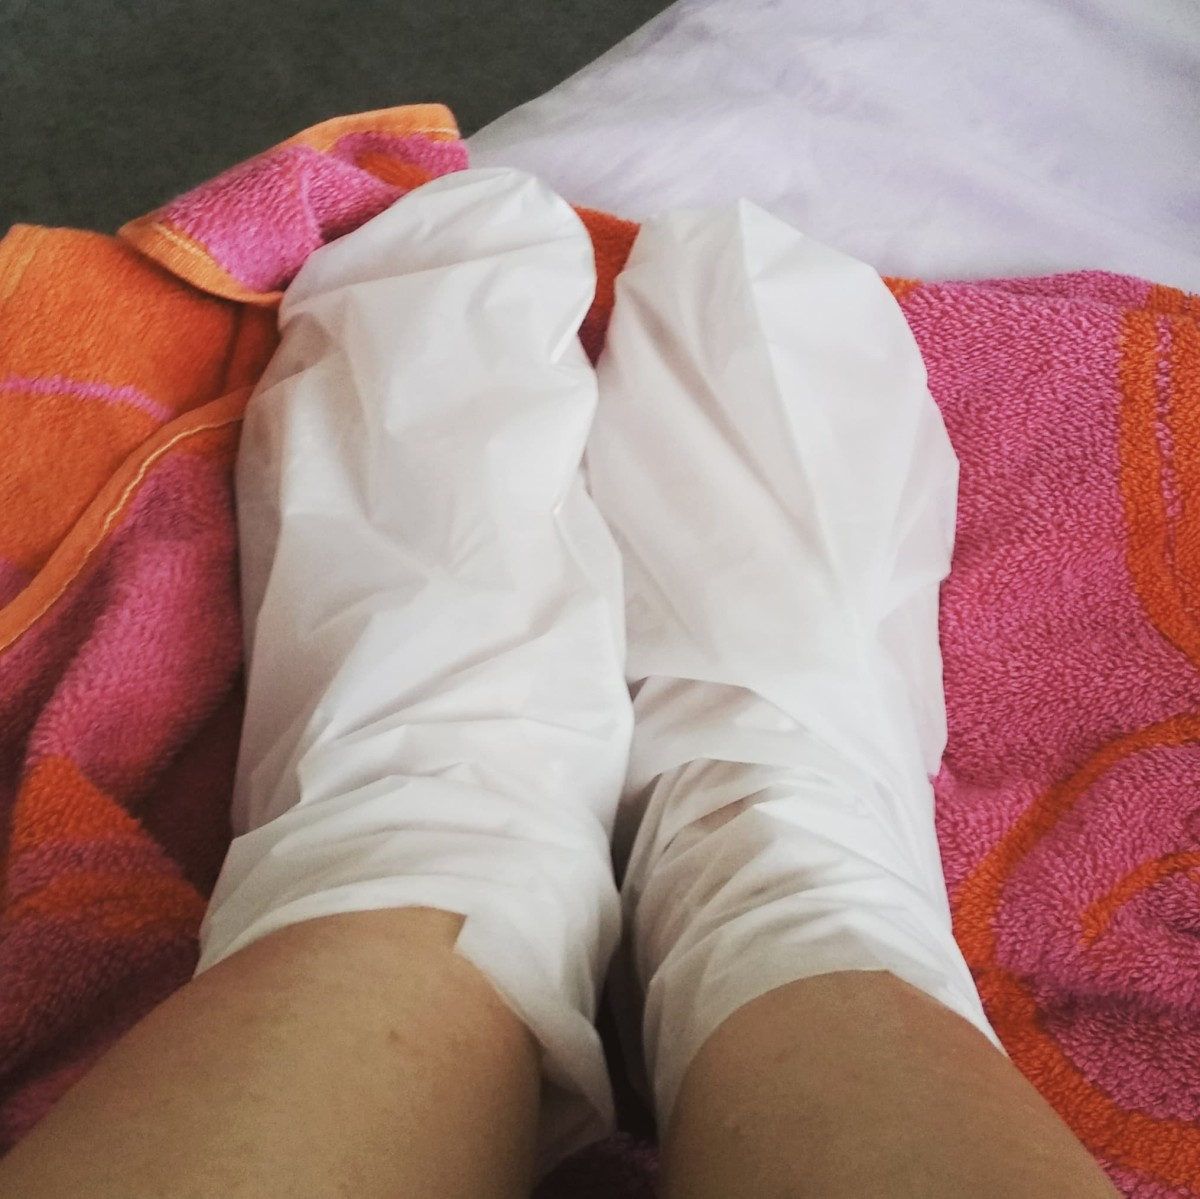 A picture of the Xpel Body care: XBC Moisturising Charcoal Foot Pack in use.